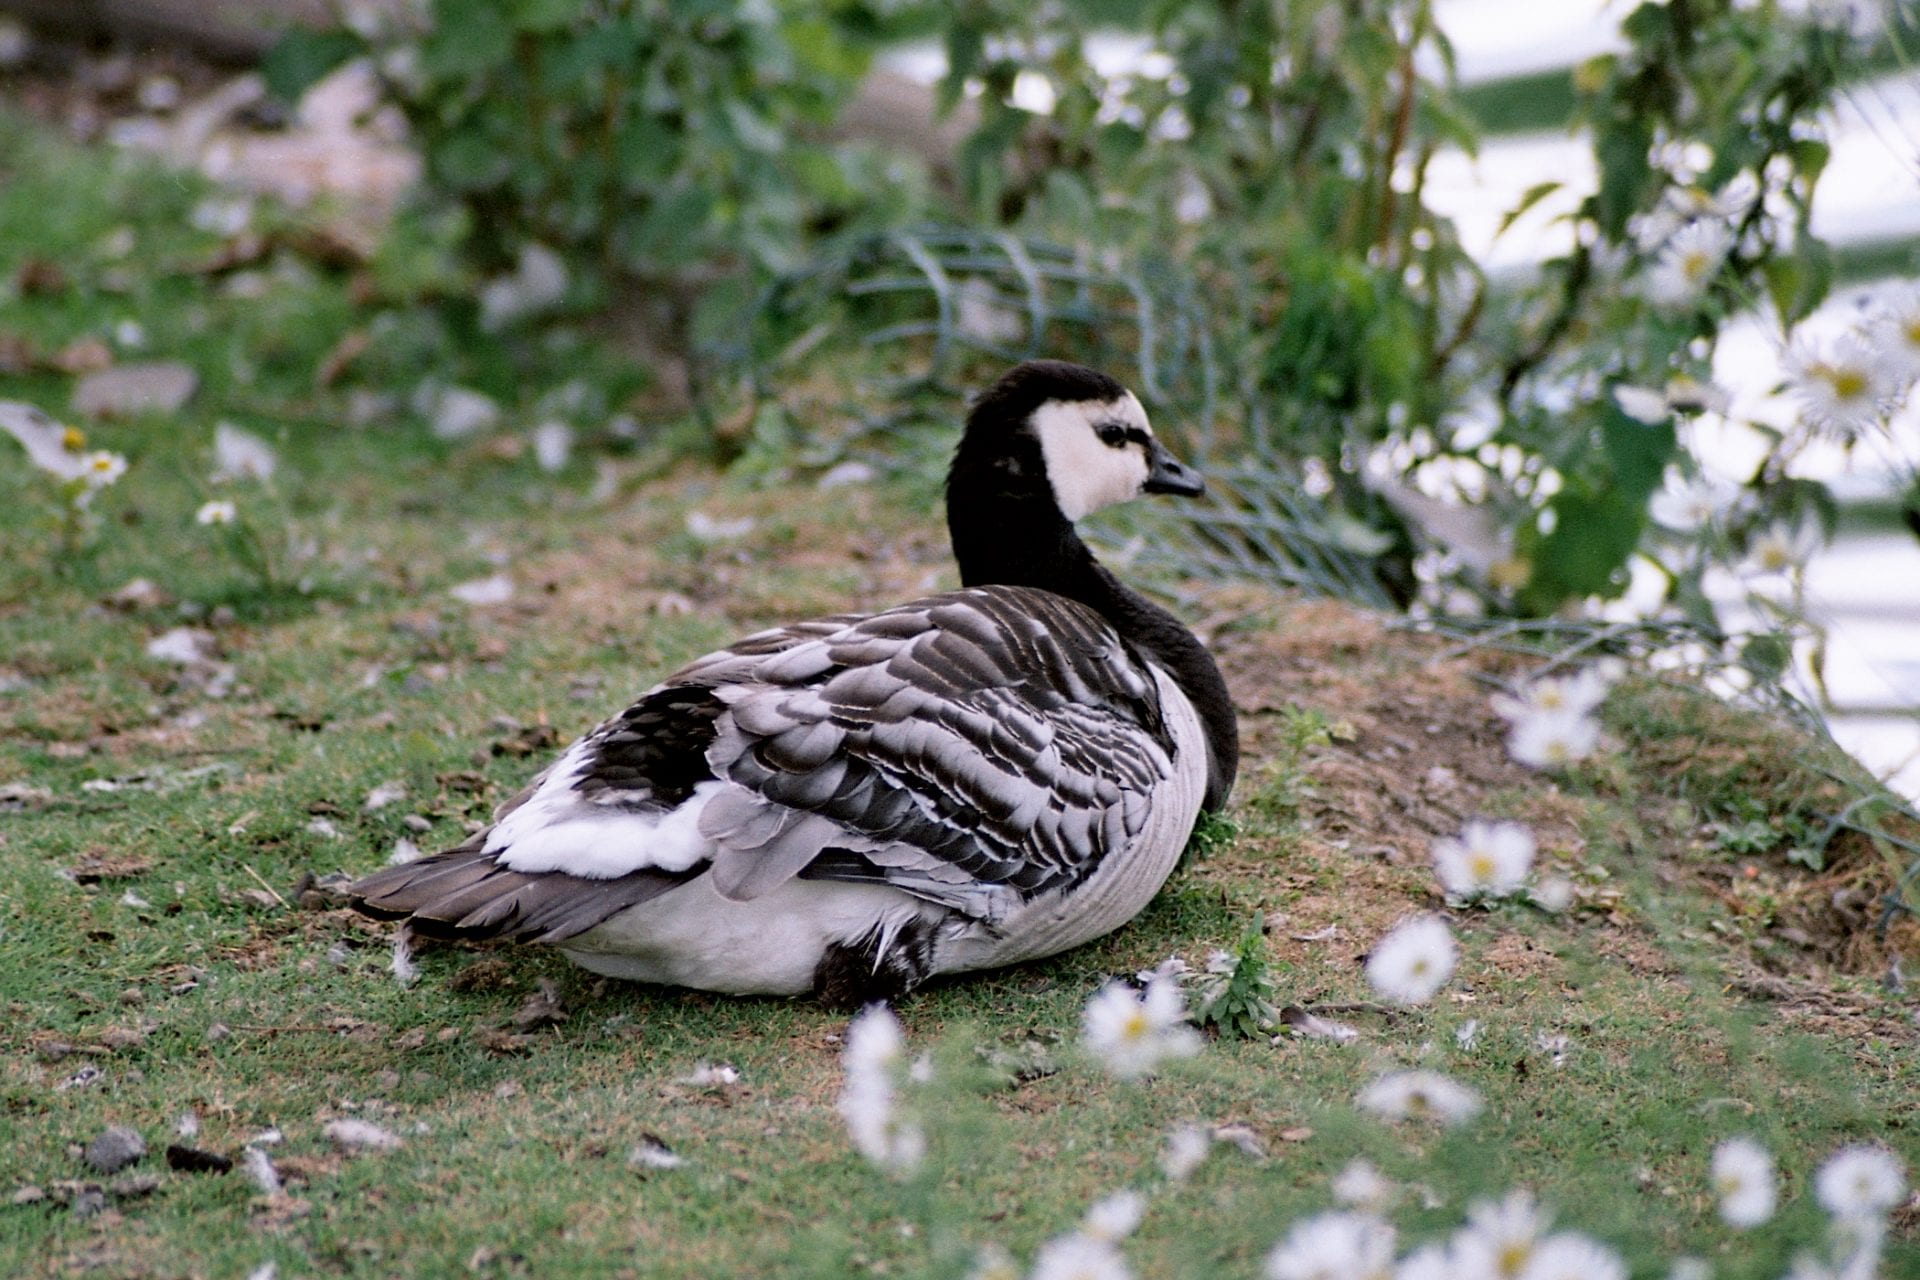 barnacle-goose-sitting-on-the-bank-of-a-pond-surrounded-by-daisies